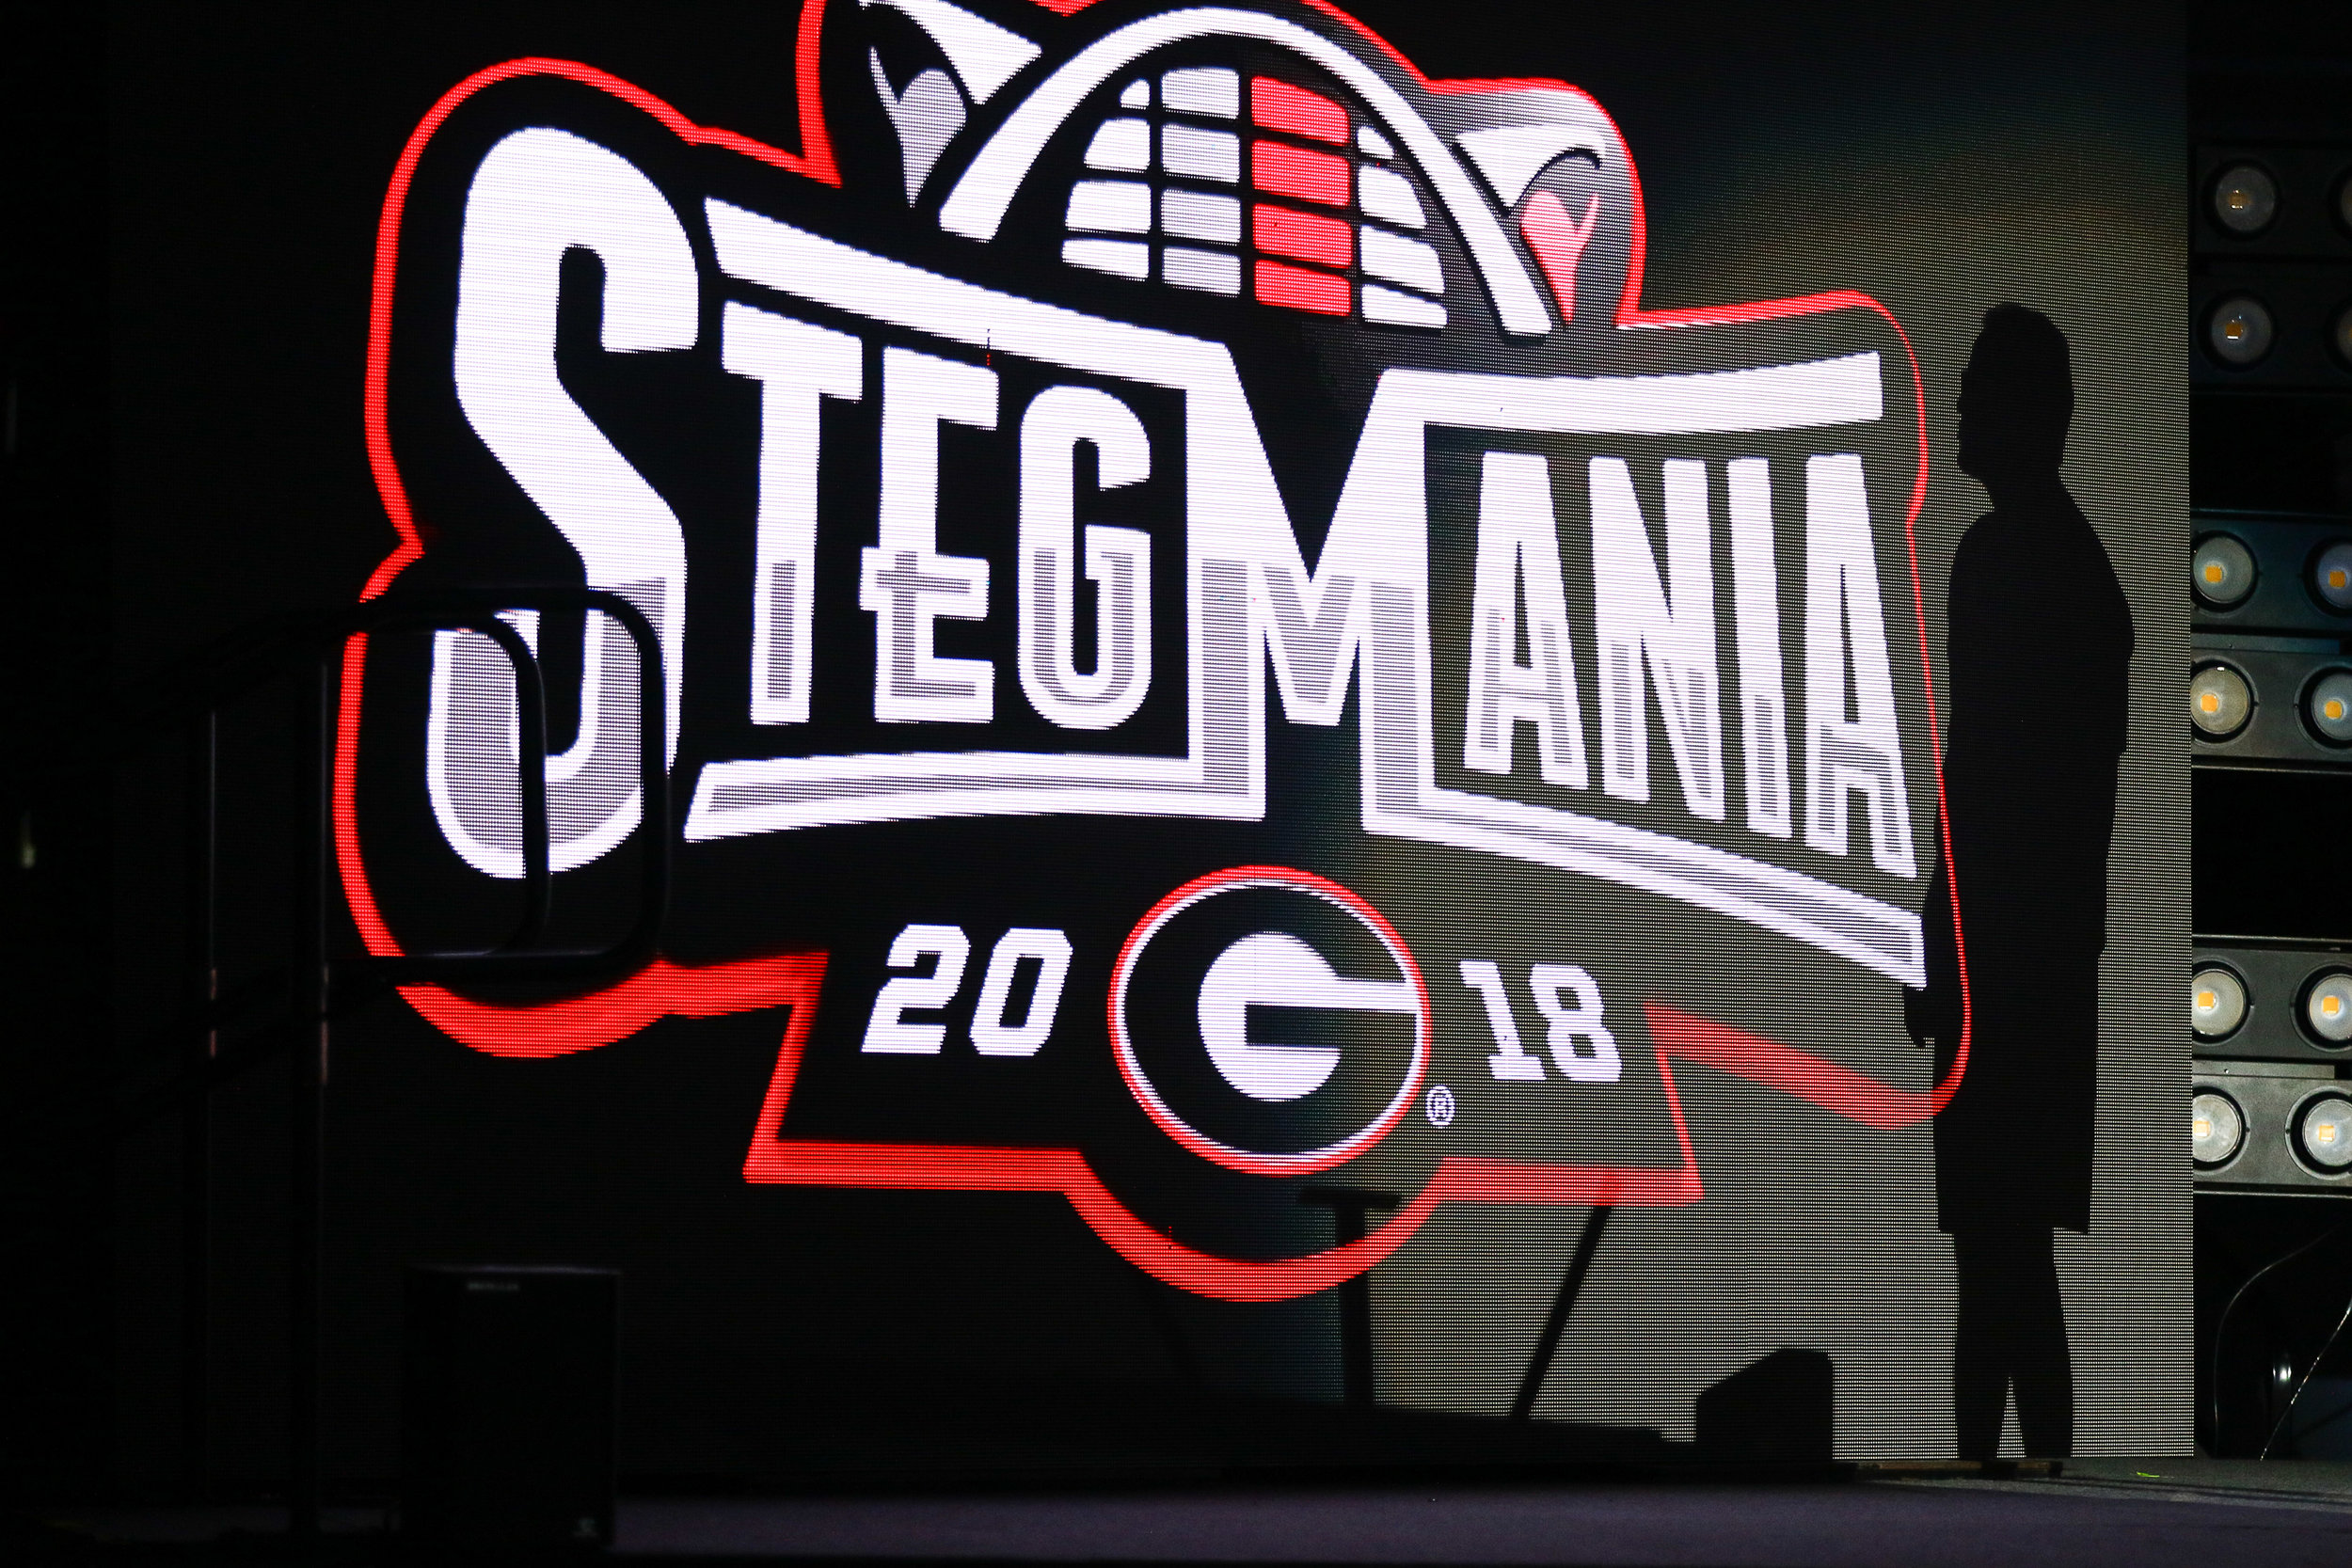 Georgia basketball head coach Tom Crean's silhouette is cast on a matrix board as he addresses fans for the first time at Stegemania in Stegeman Coliseum on Friday, October 5, 2018. Stegemania allowed both teams the opportunity to showcase their talents before the start of their seasons.